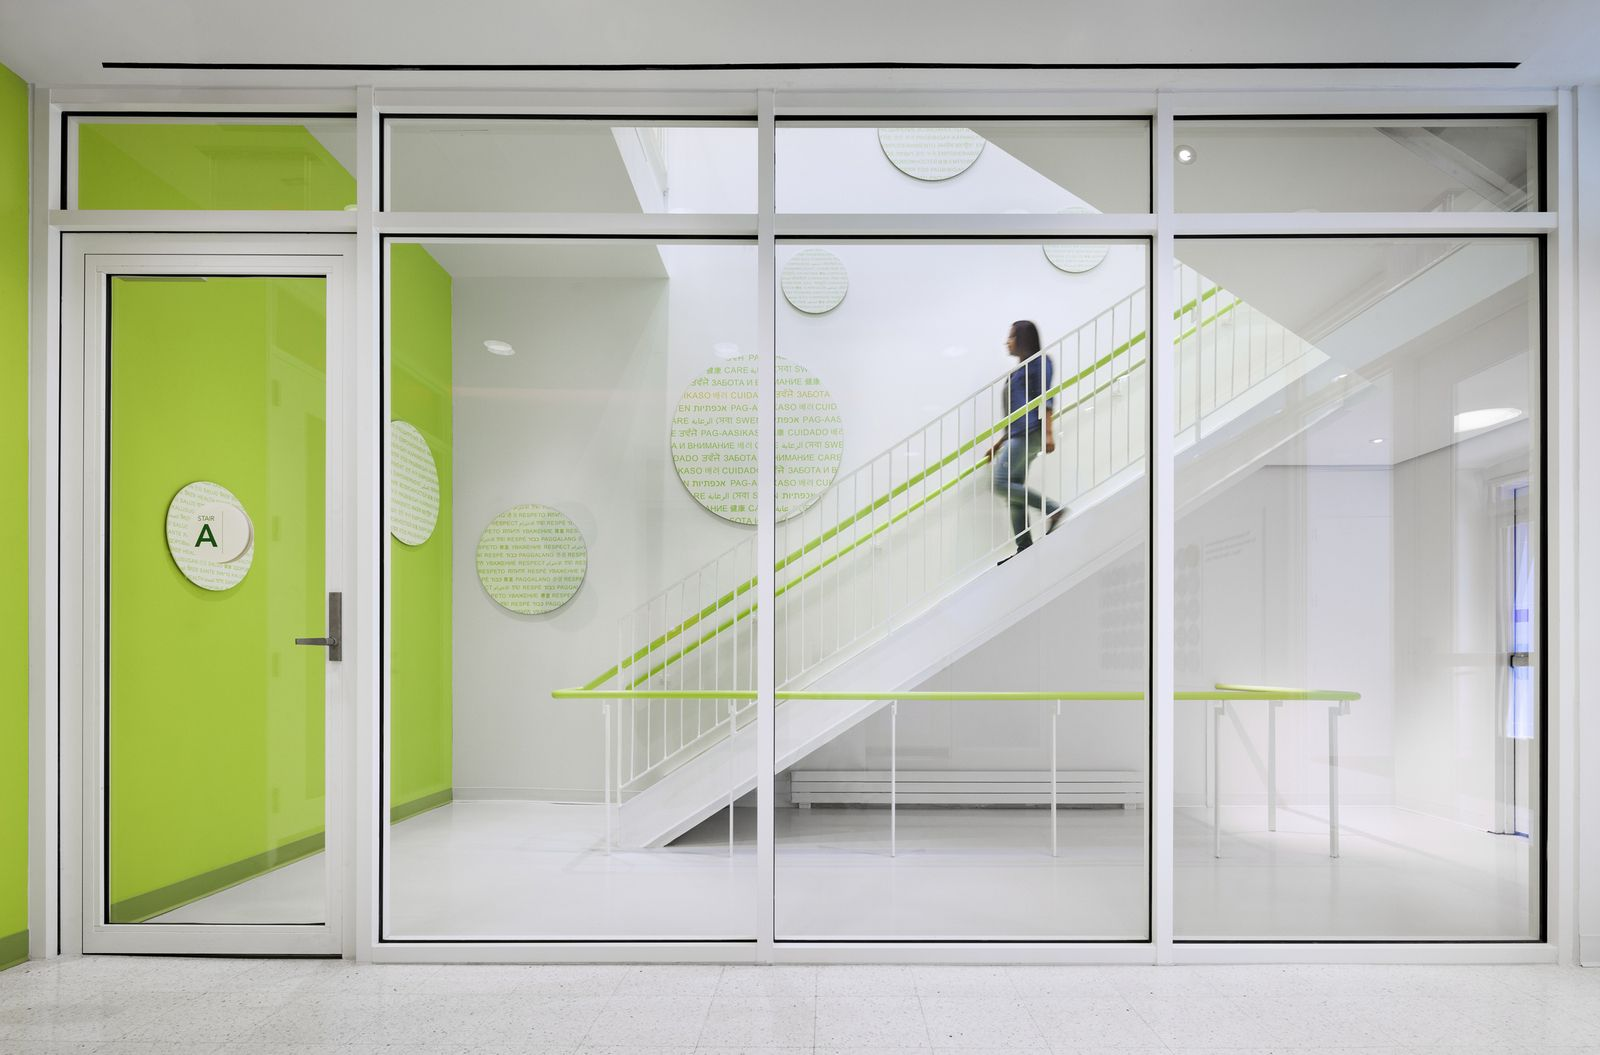 Fire rated glass office doors - Fire Rated Glass Natural Light And Colorful Graphics Transform Ordinary Fire Stairs Into